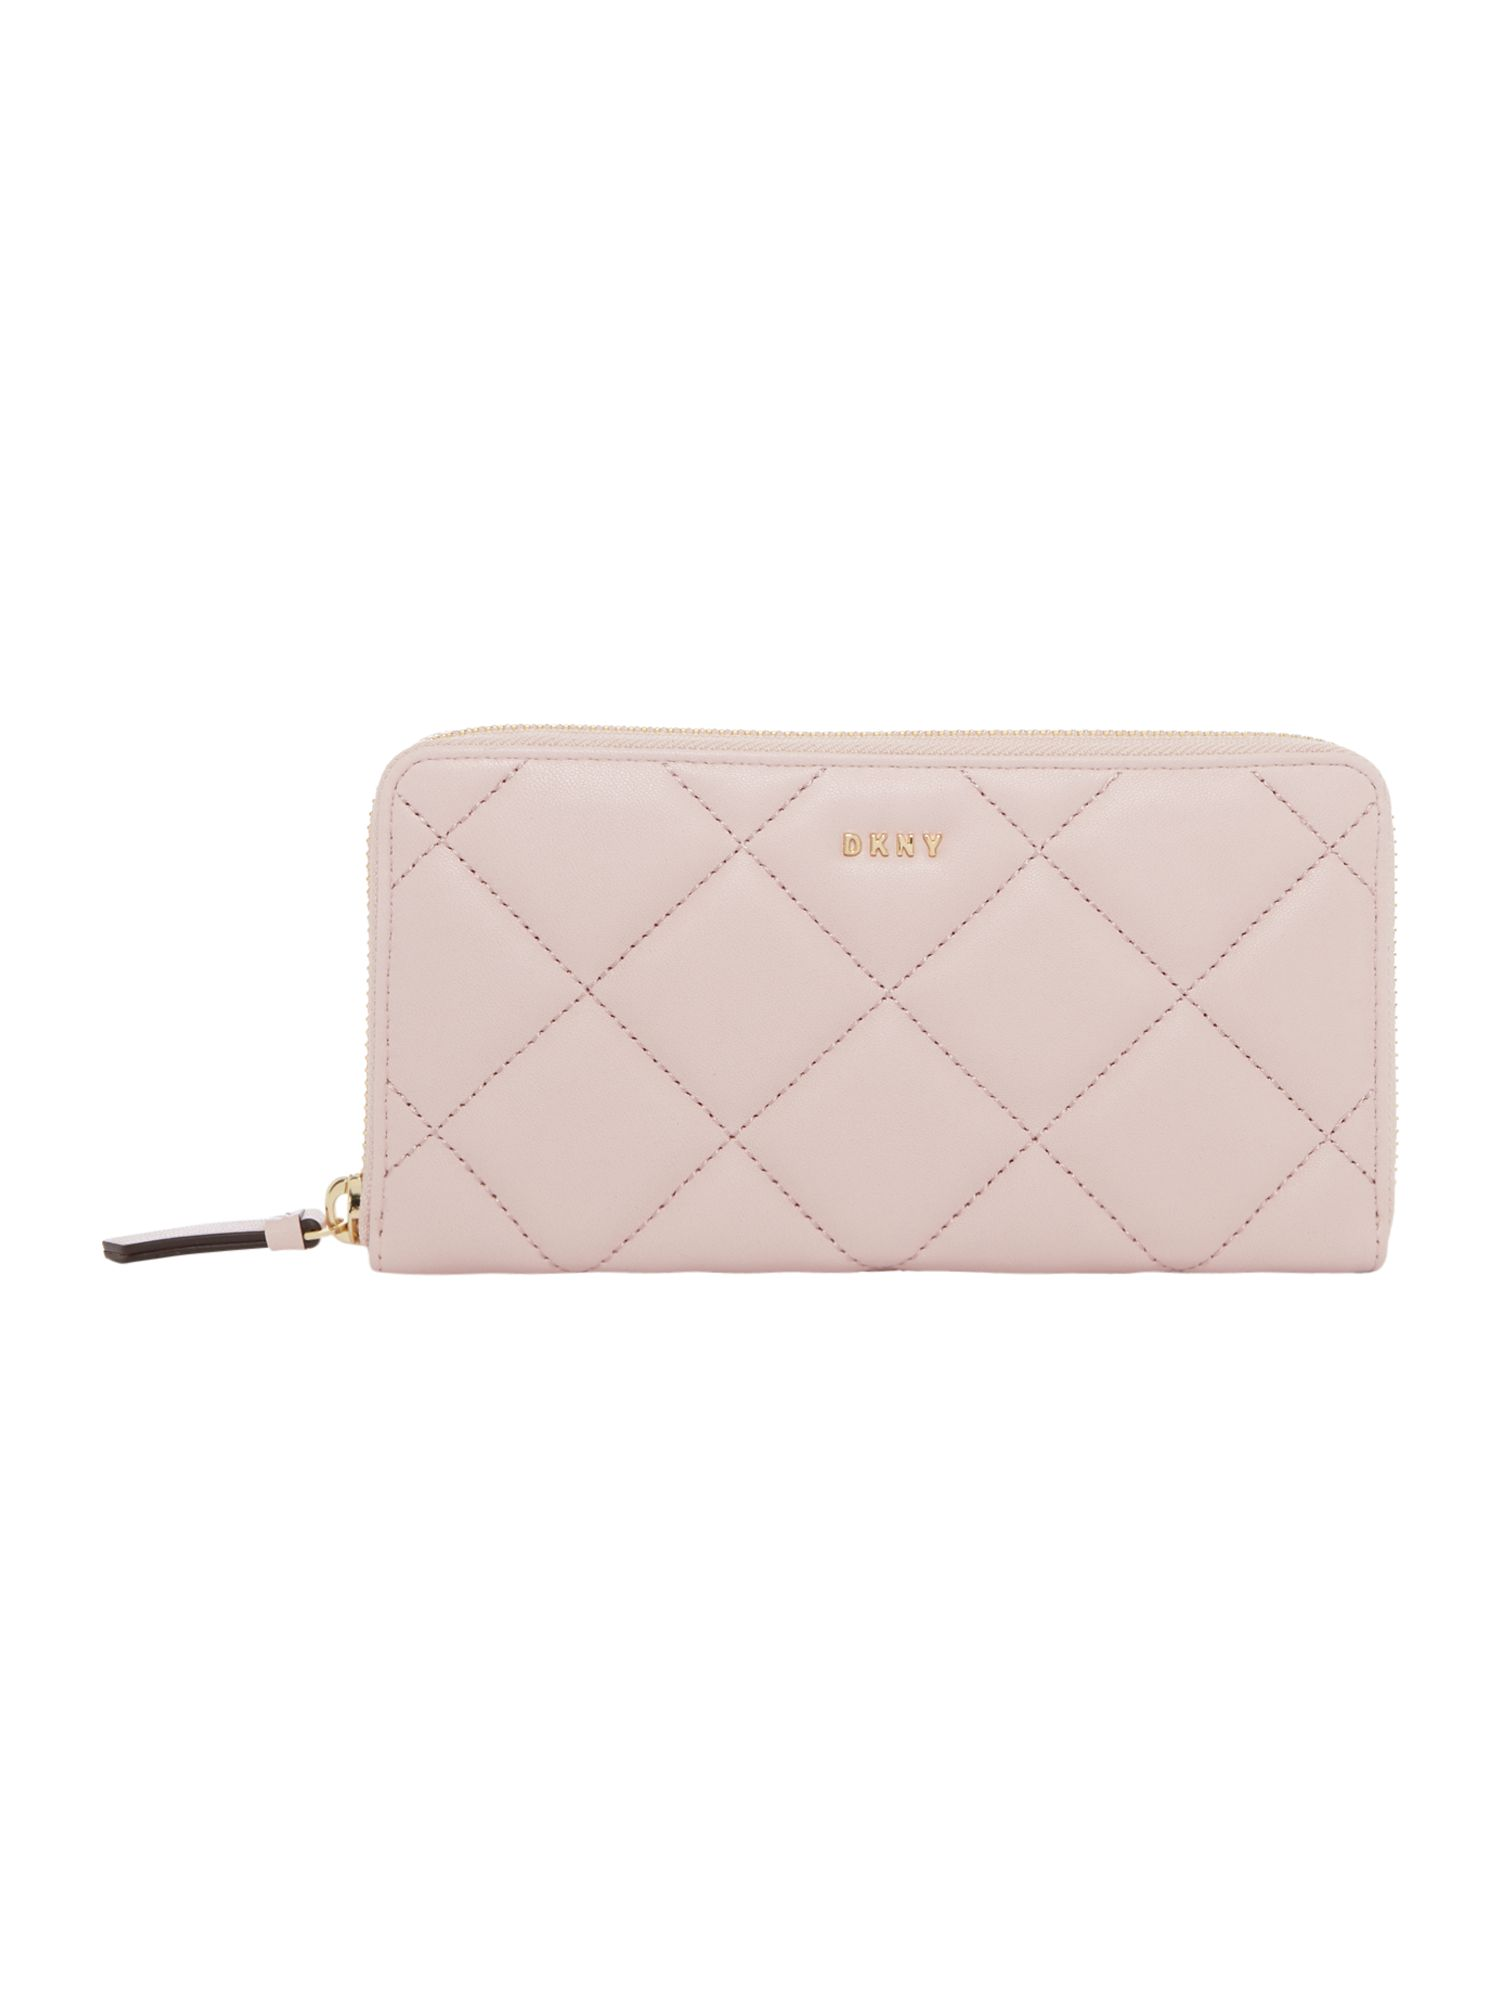 DKNY Barbara large zip around purse, Pink